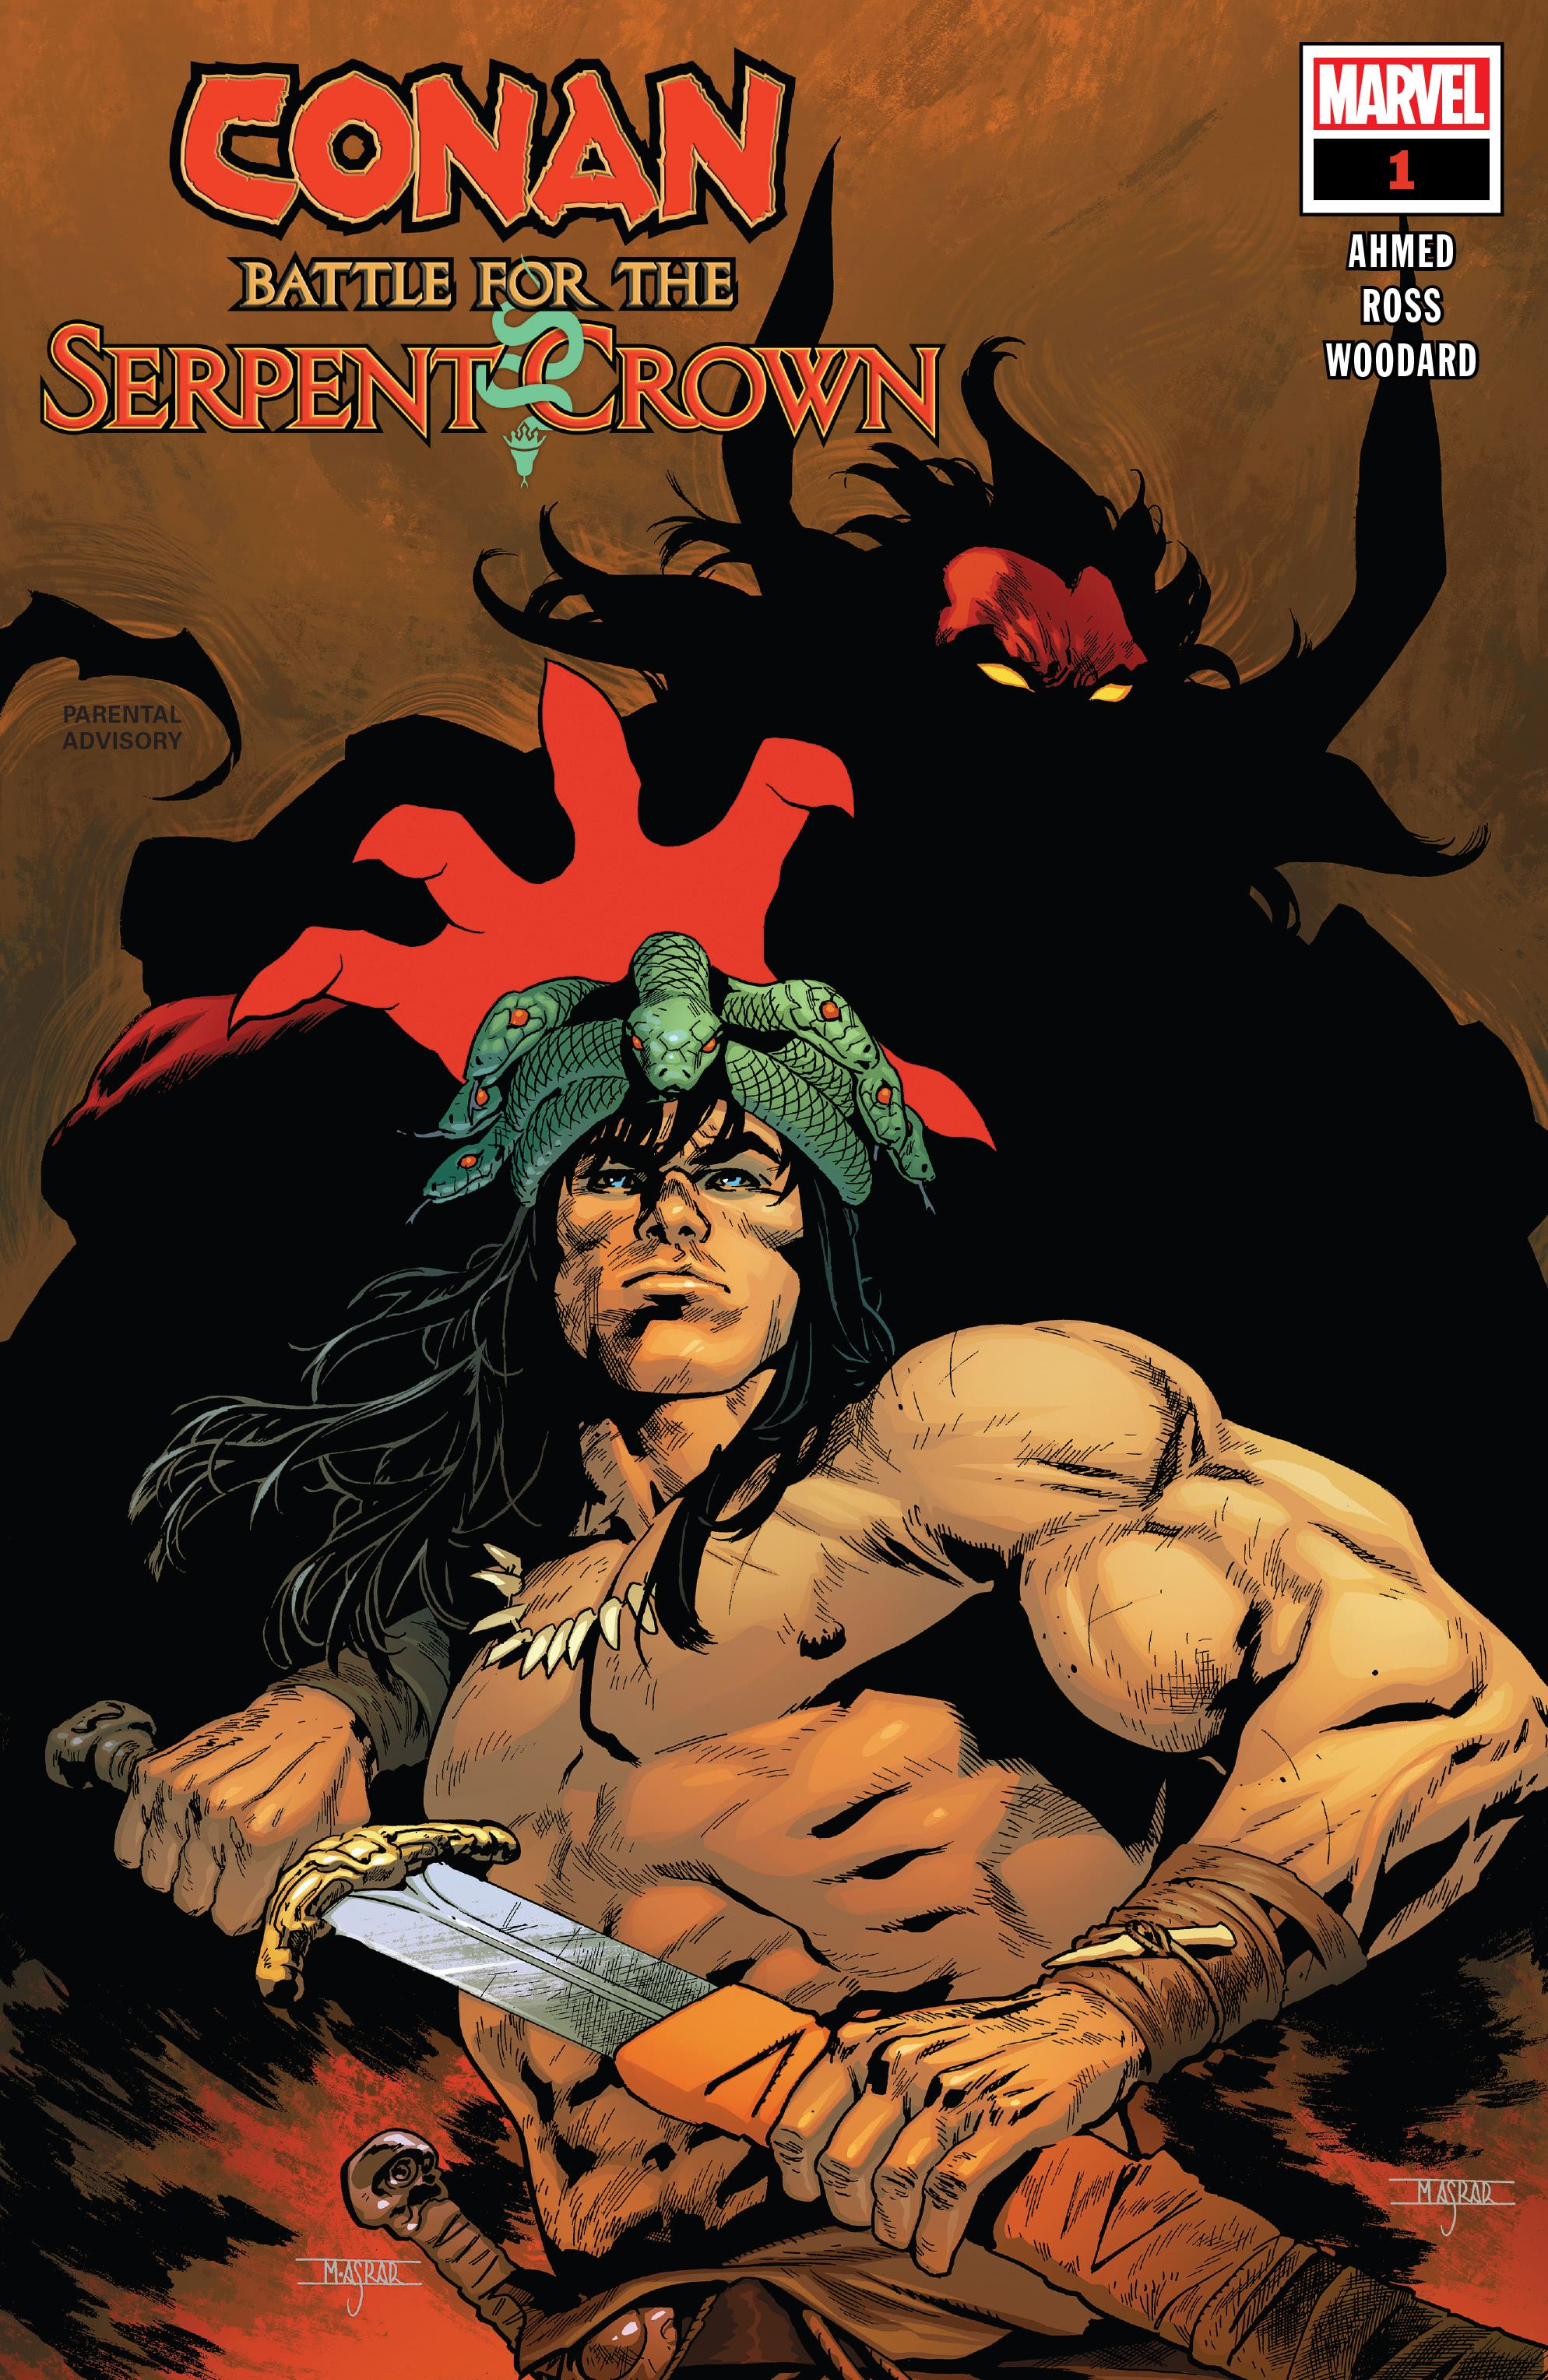 Conan: Battle for the Serpent Crown Vol 1 1